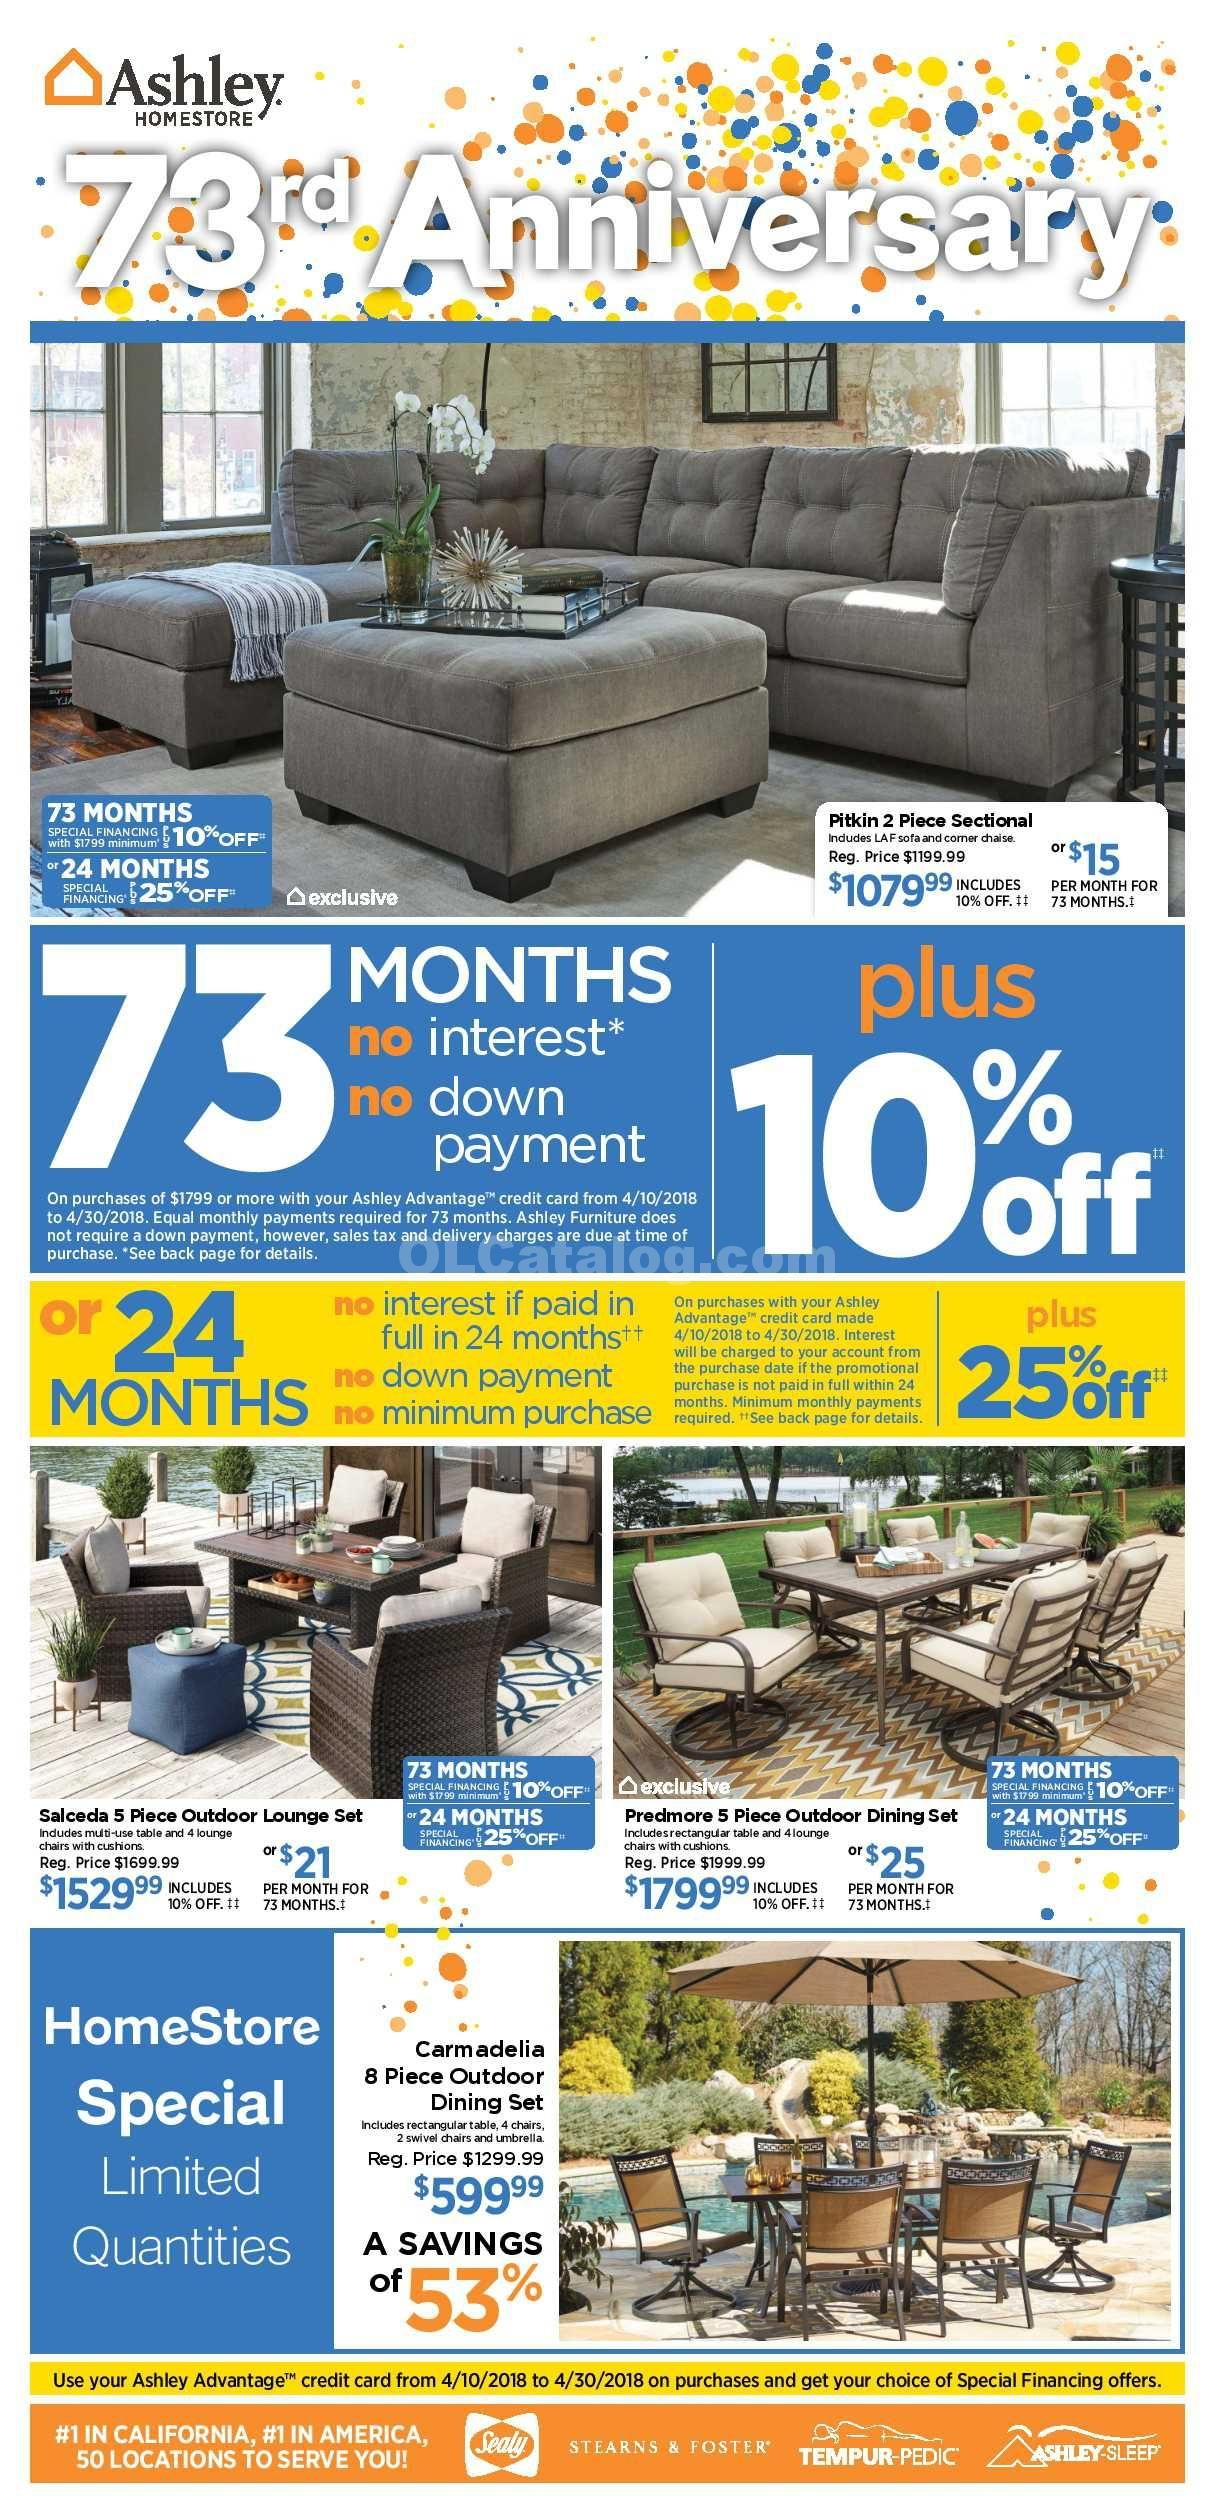 september pics unique of homestore west furniture to beautiful sale flyer ashley ad